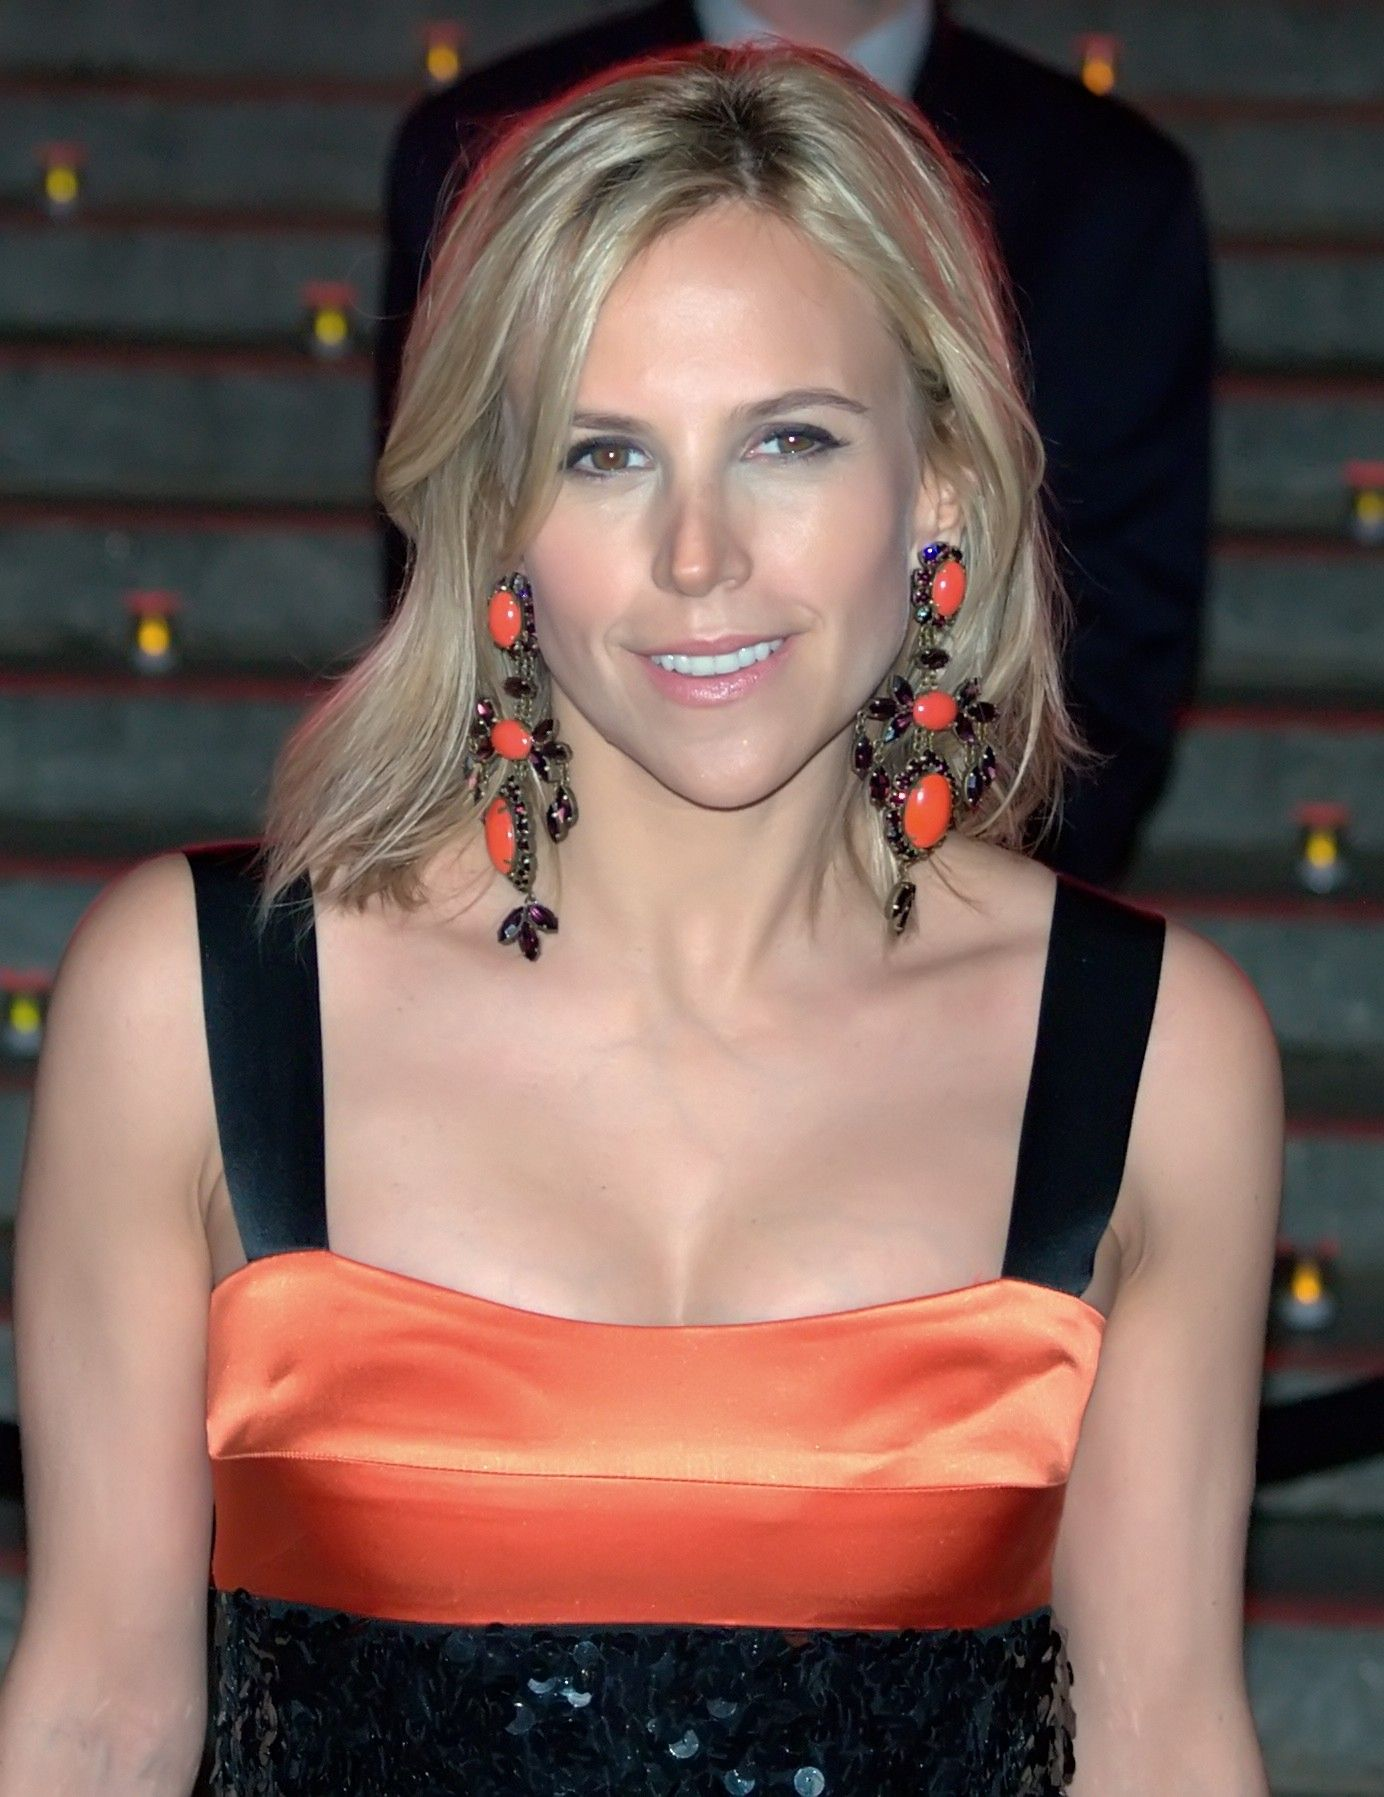 File:Tory Burch 2 Shankbone 2009 Vanity Fair.jpg - Wikipedia, the free